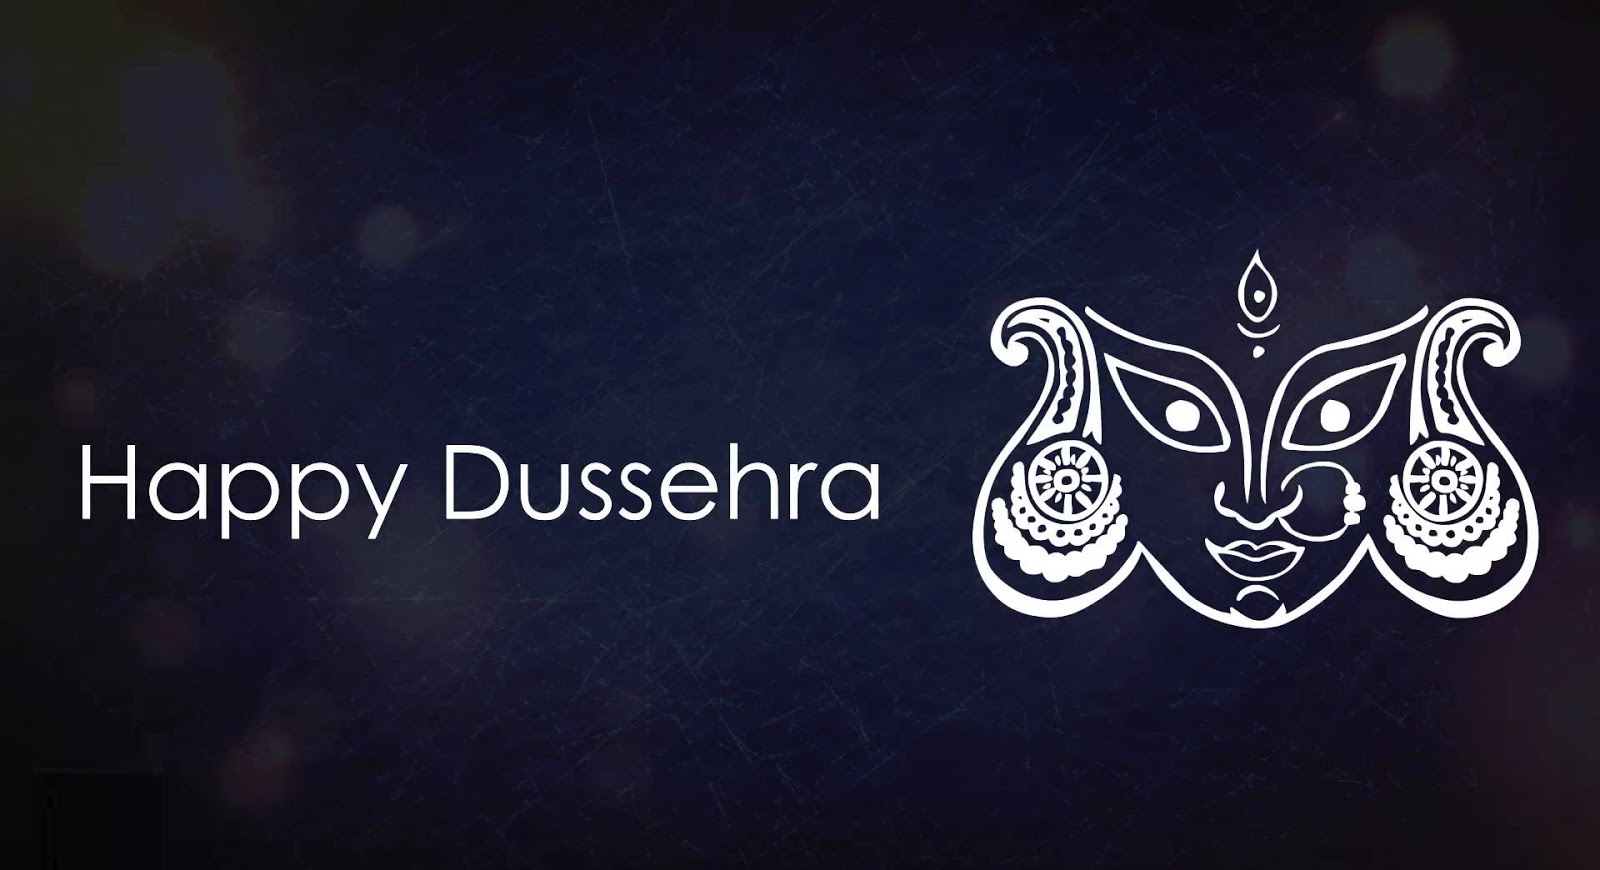 Happy Dussehra 2017 Wishes Greetings Messages Quotes Happy